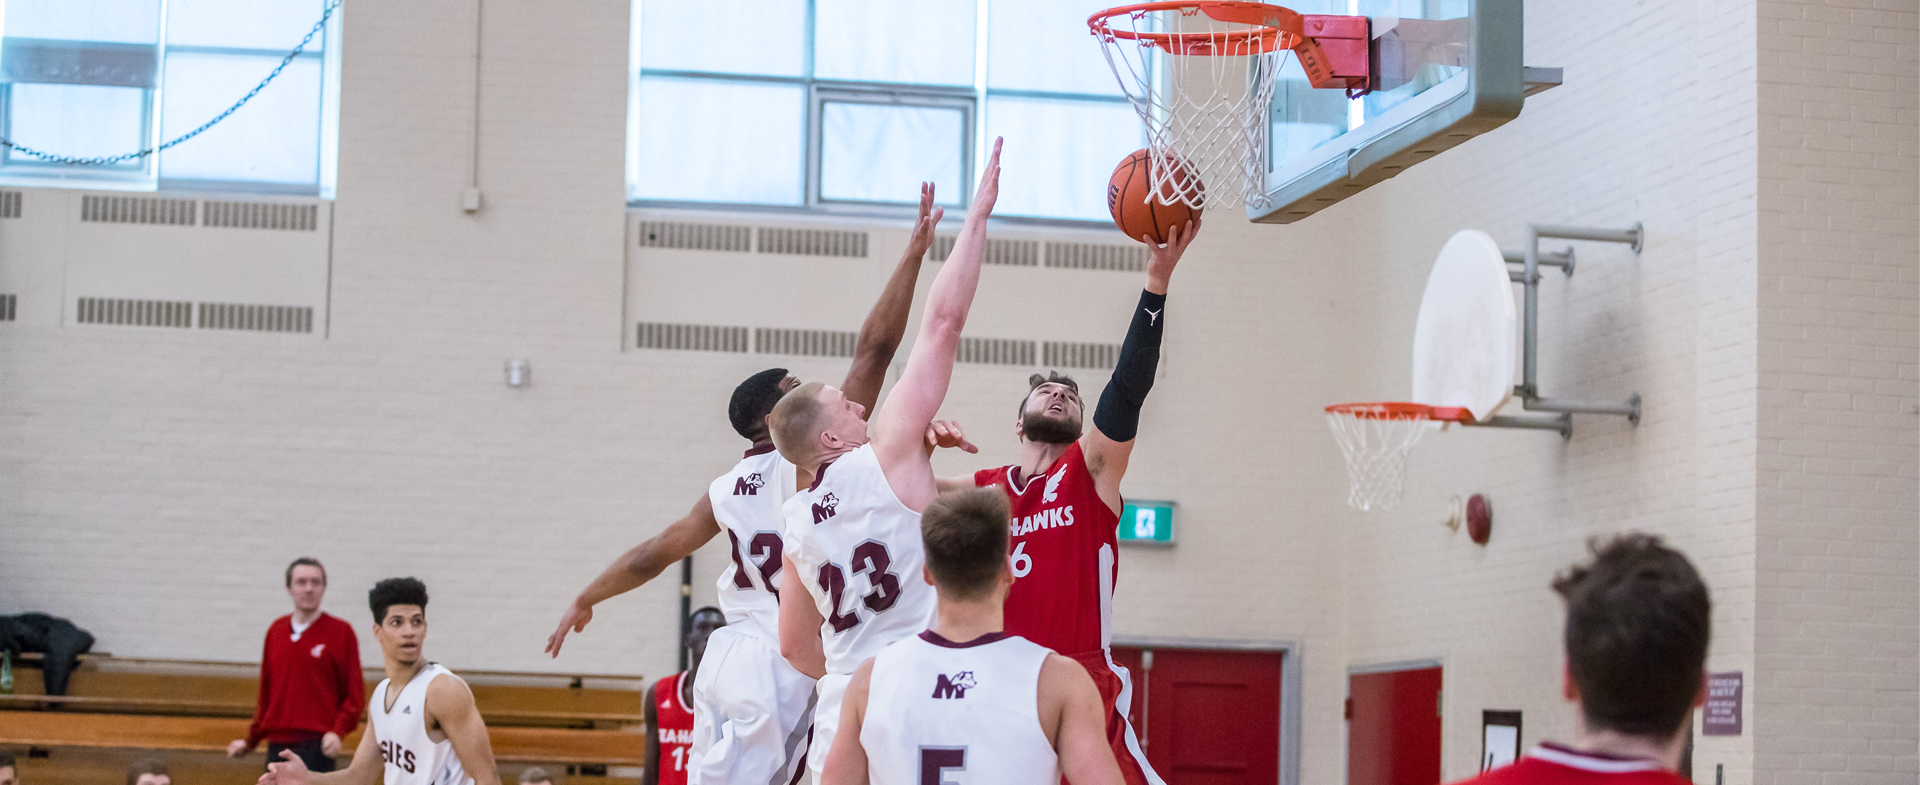 Huskies Edge Sea-Hawks at Home